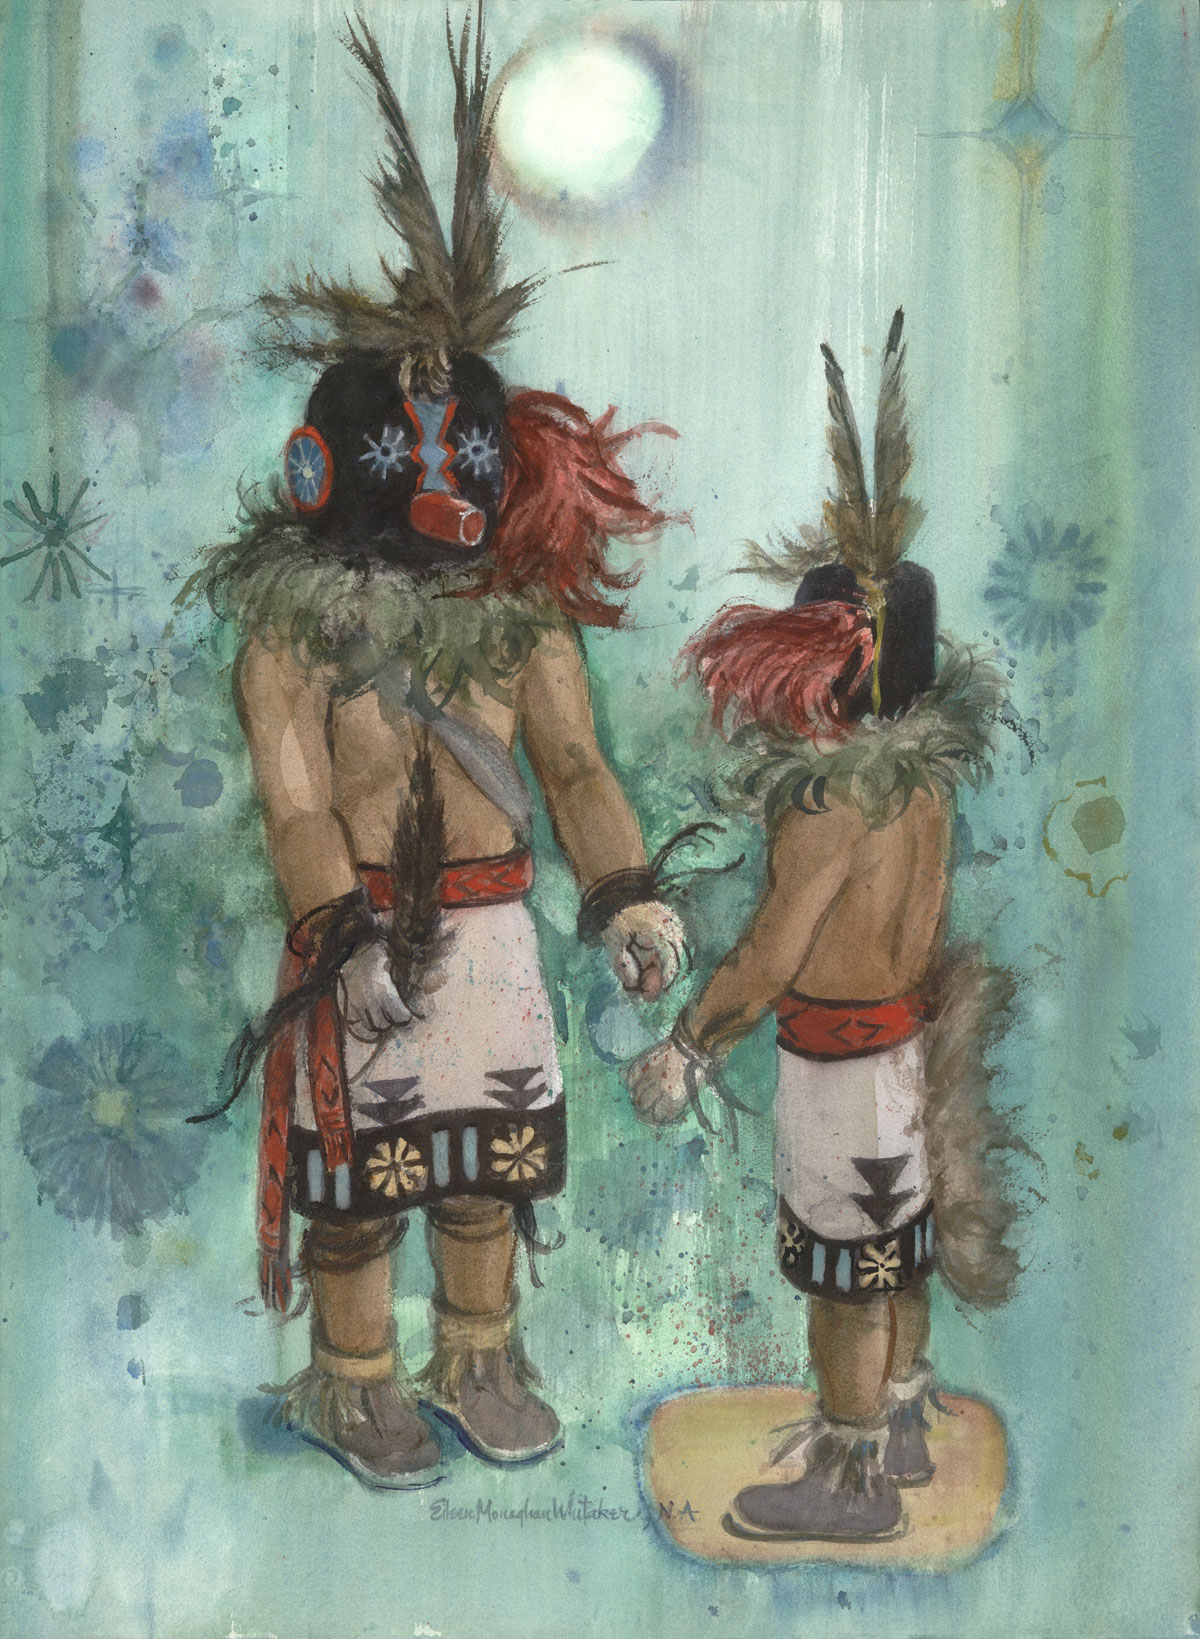 """Kachina Dolls (Corn Dancers Sio Avachhoya)"" 1983 © Eileen Monaghan Whitaker 22x30 inches"